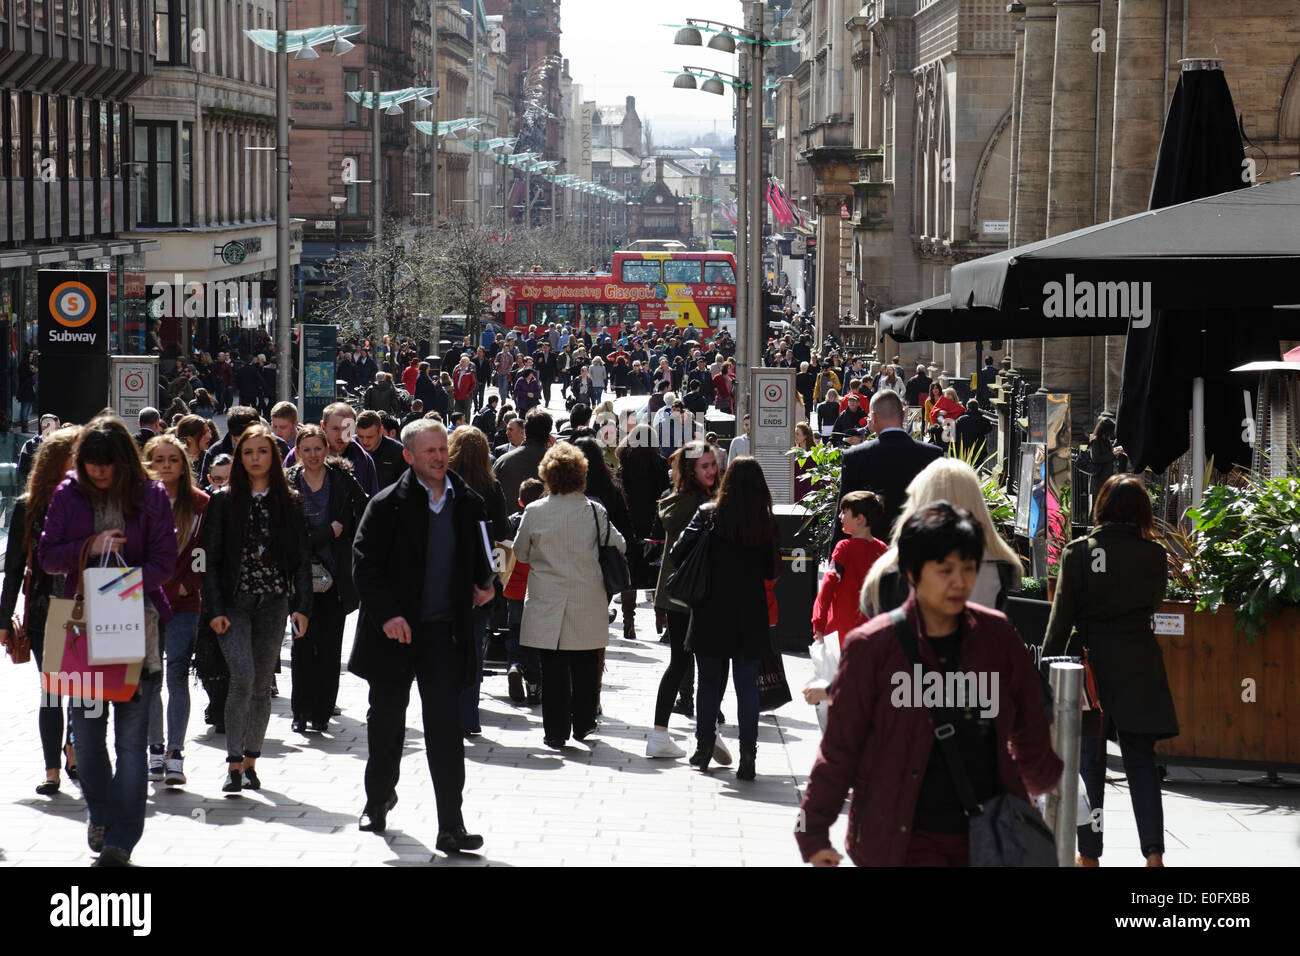 View south to people walking on Buchanan Street in Glasgow city centre, Scotland, UK - Stock Image